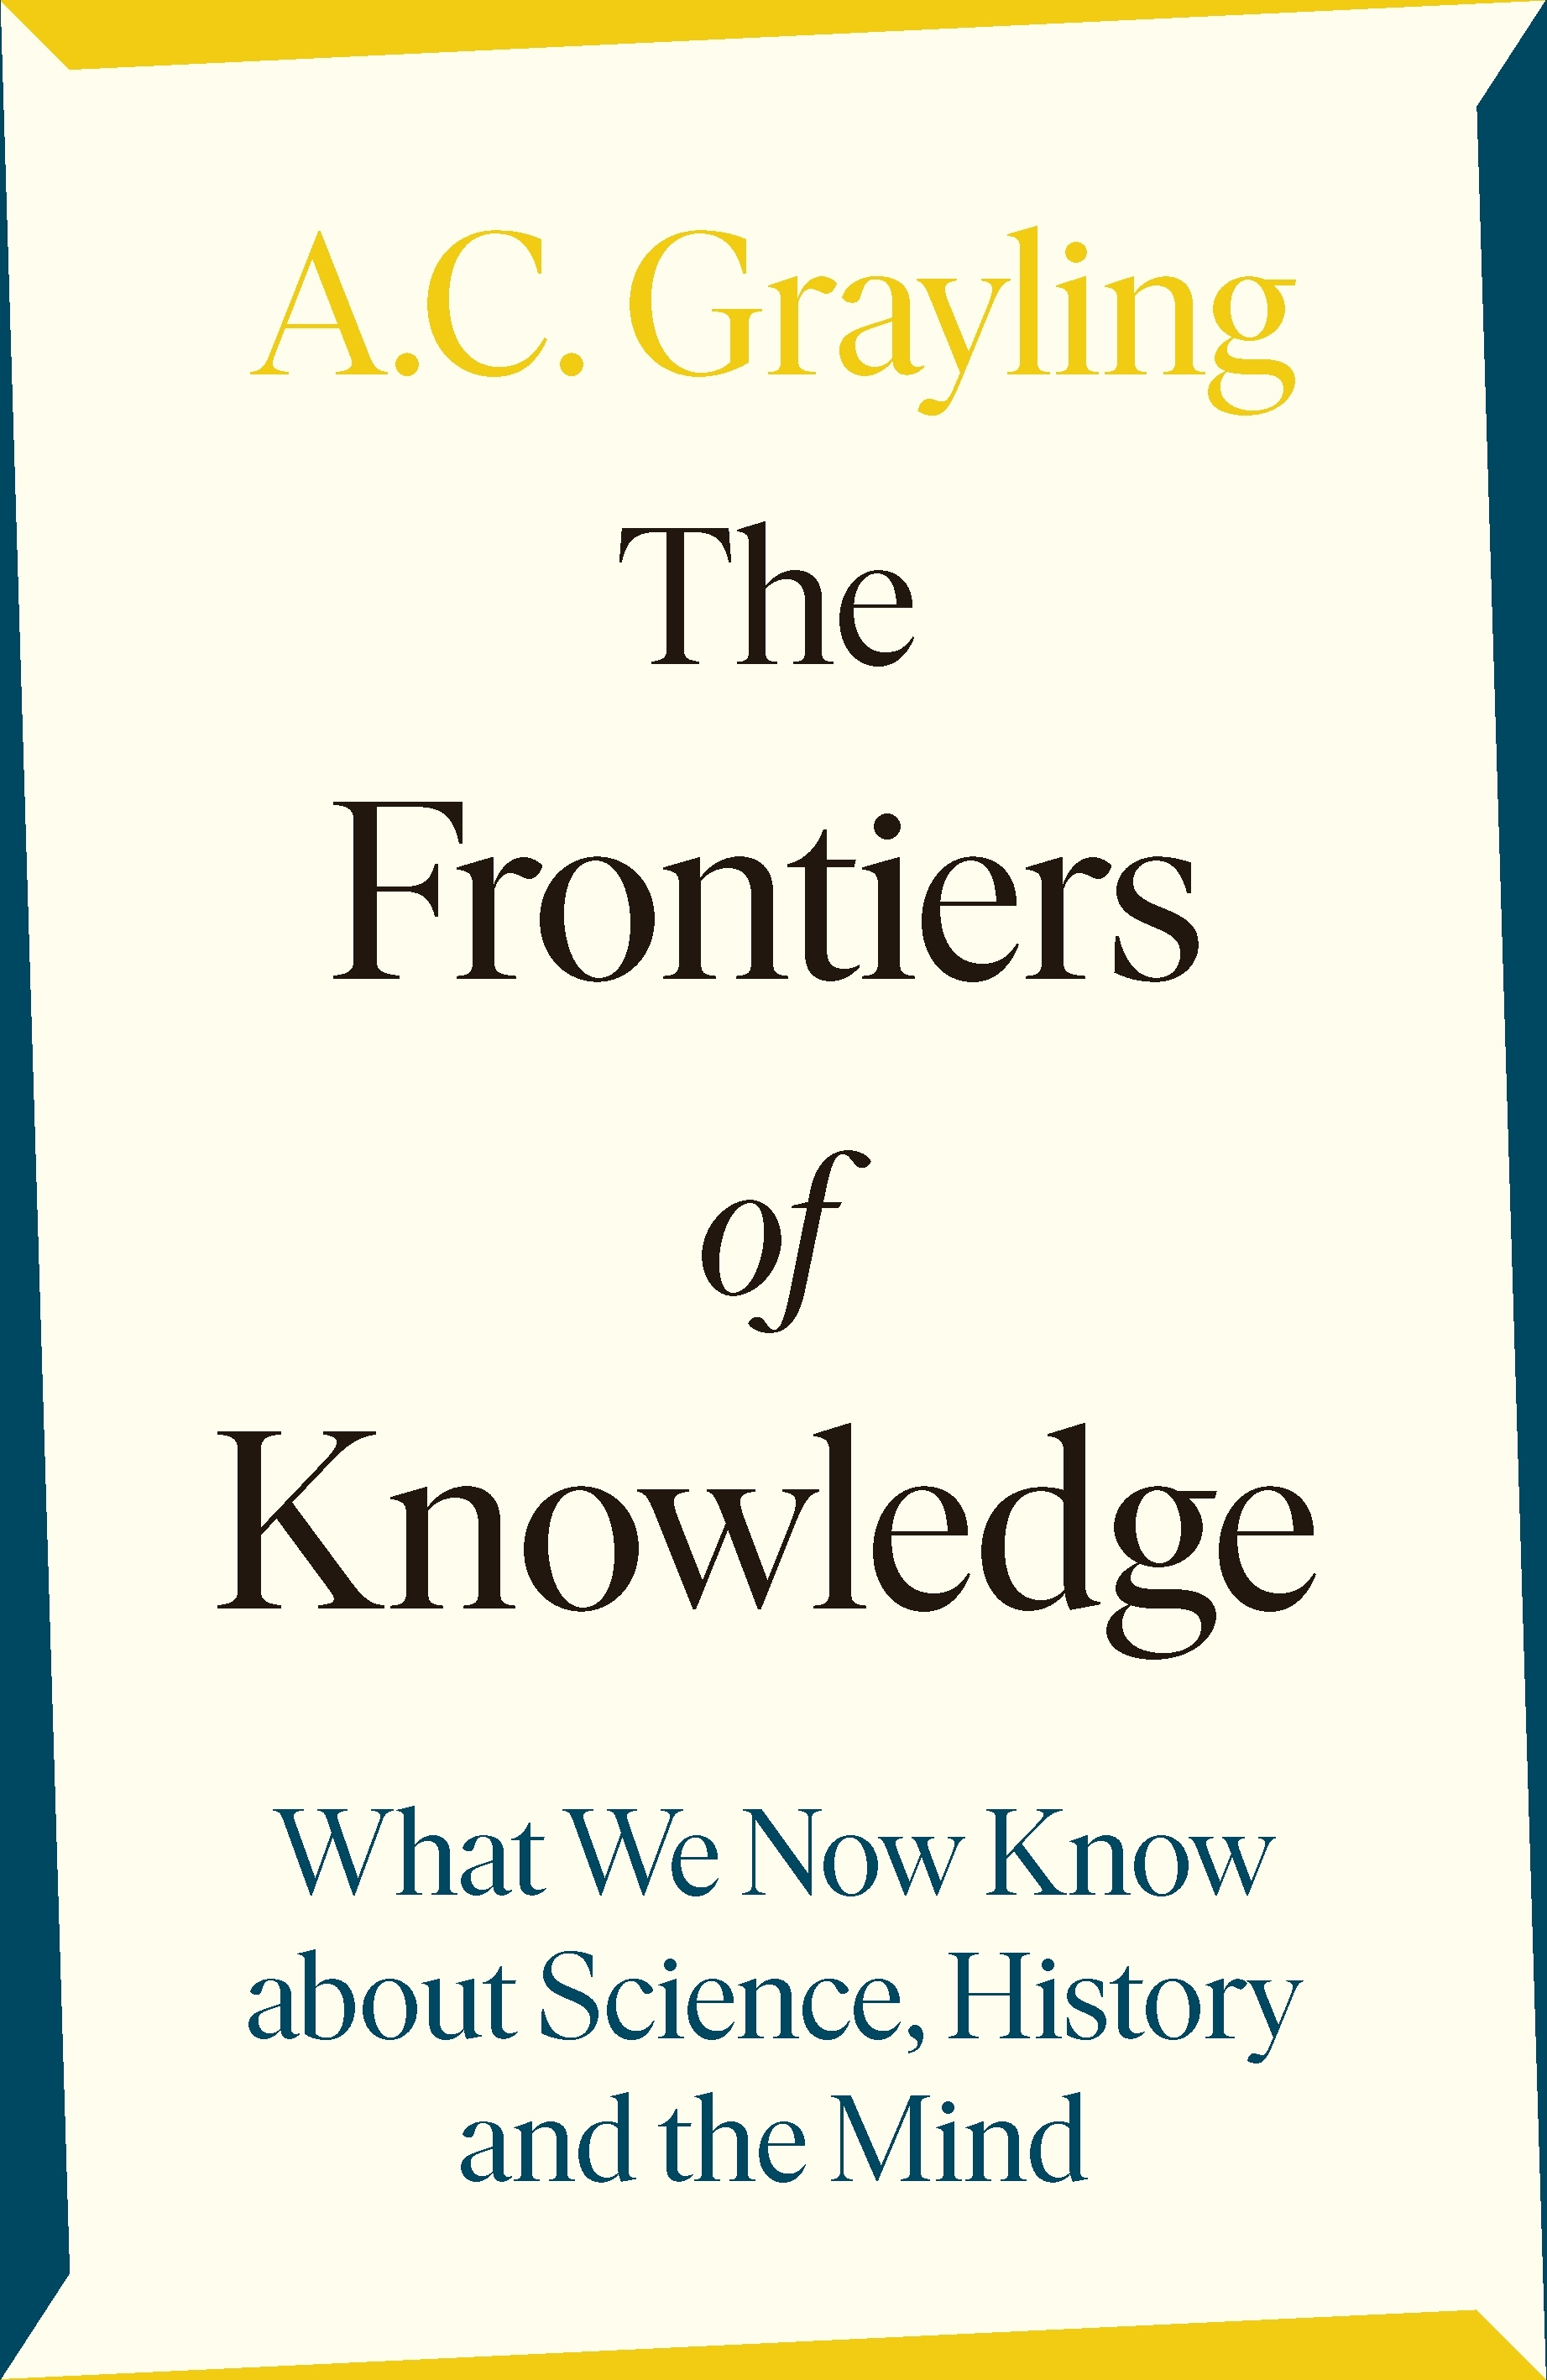 Extract: The Frontiers of Knowledge by A C Grayling